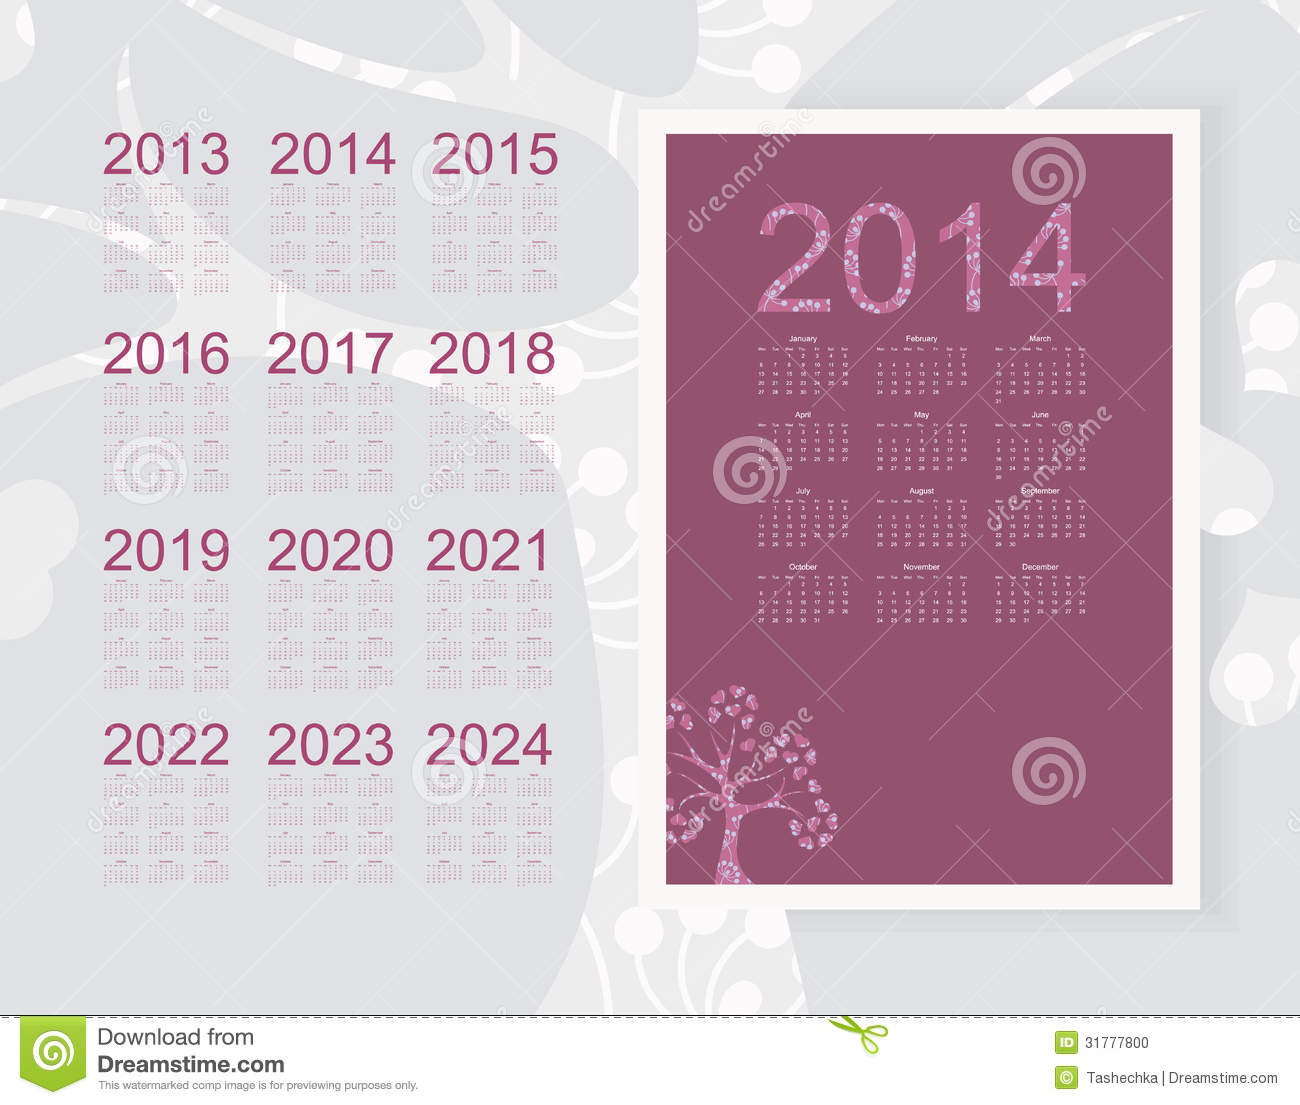 Free Calendar 2014 And 2020 Calendar 2014 stock vector. Illustration of 2022, 2016   31777800